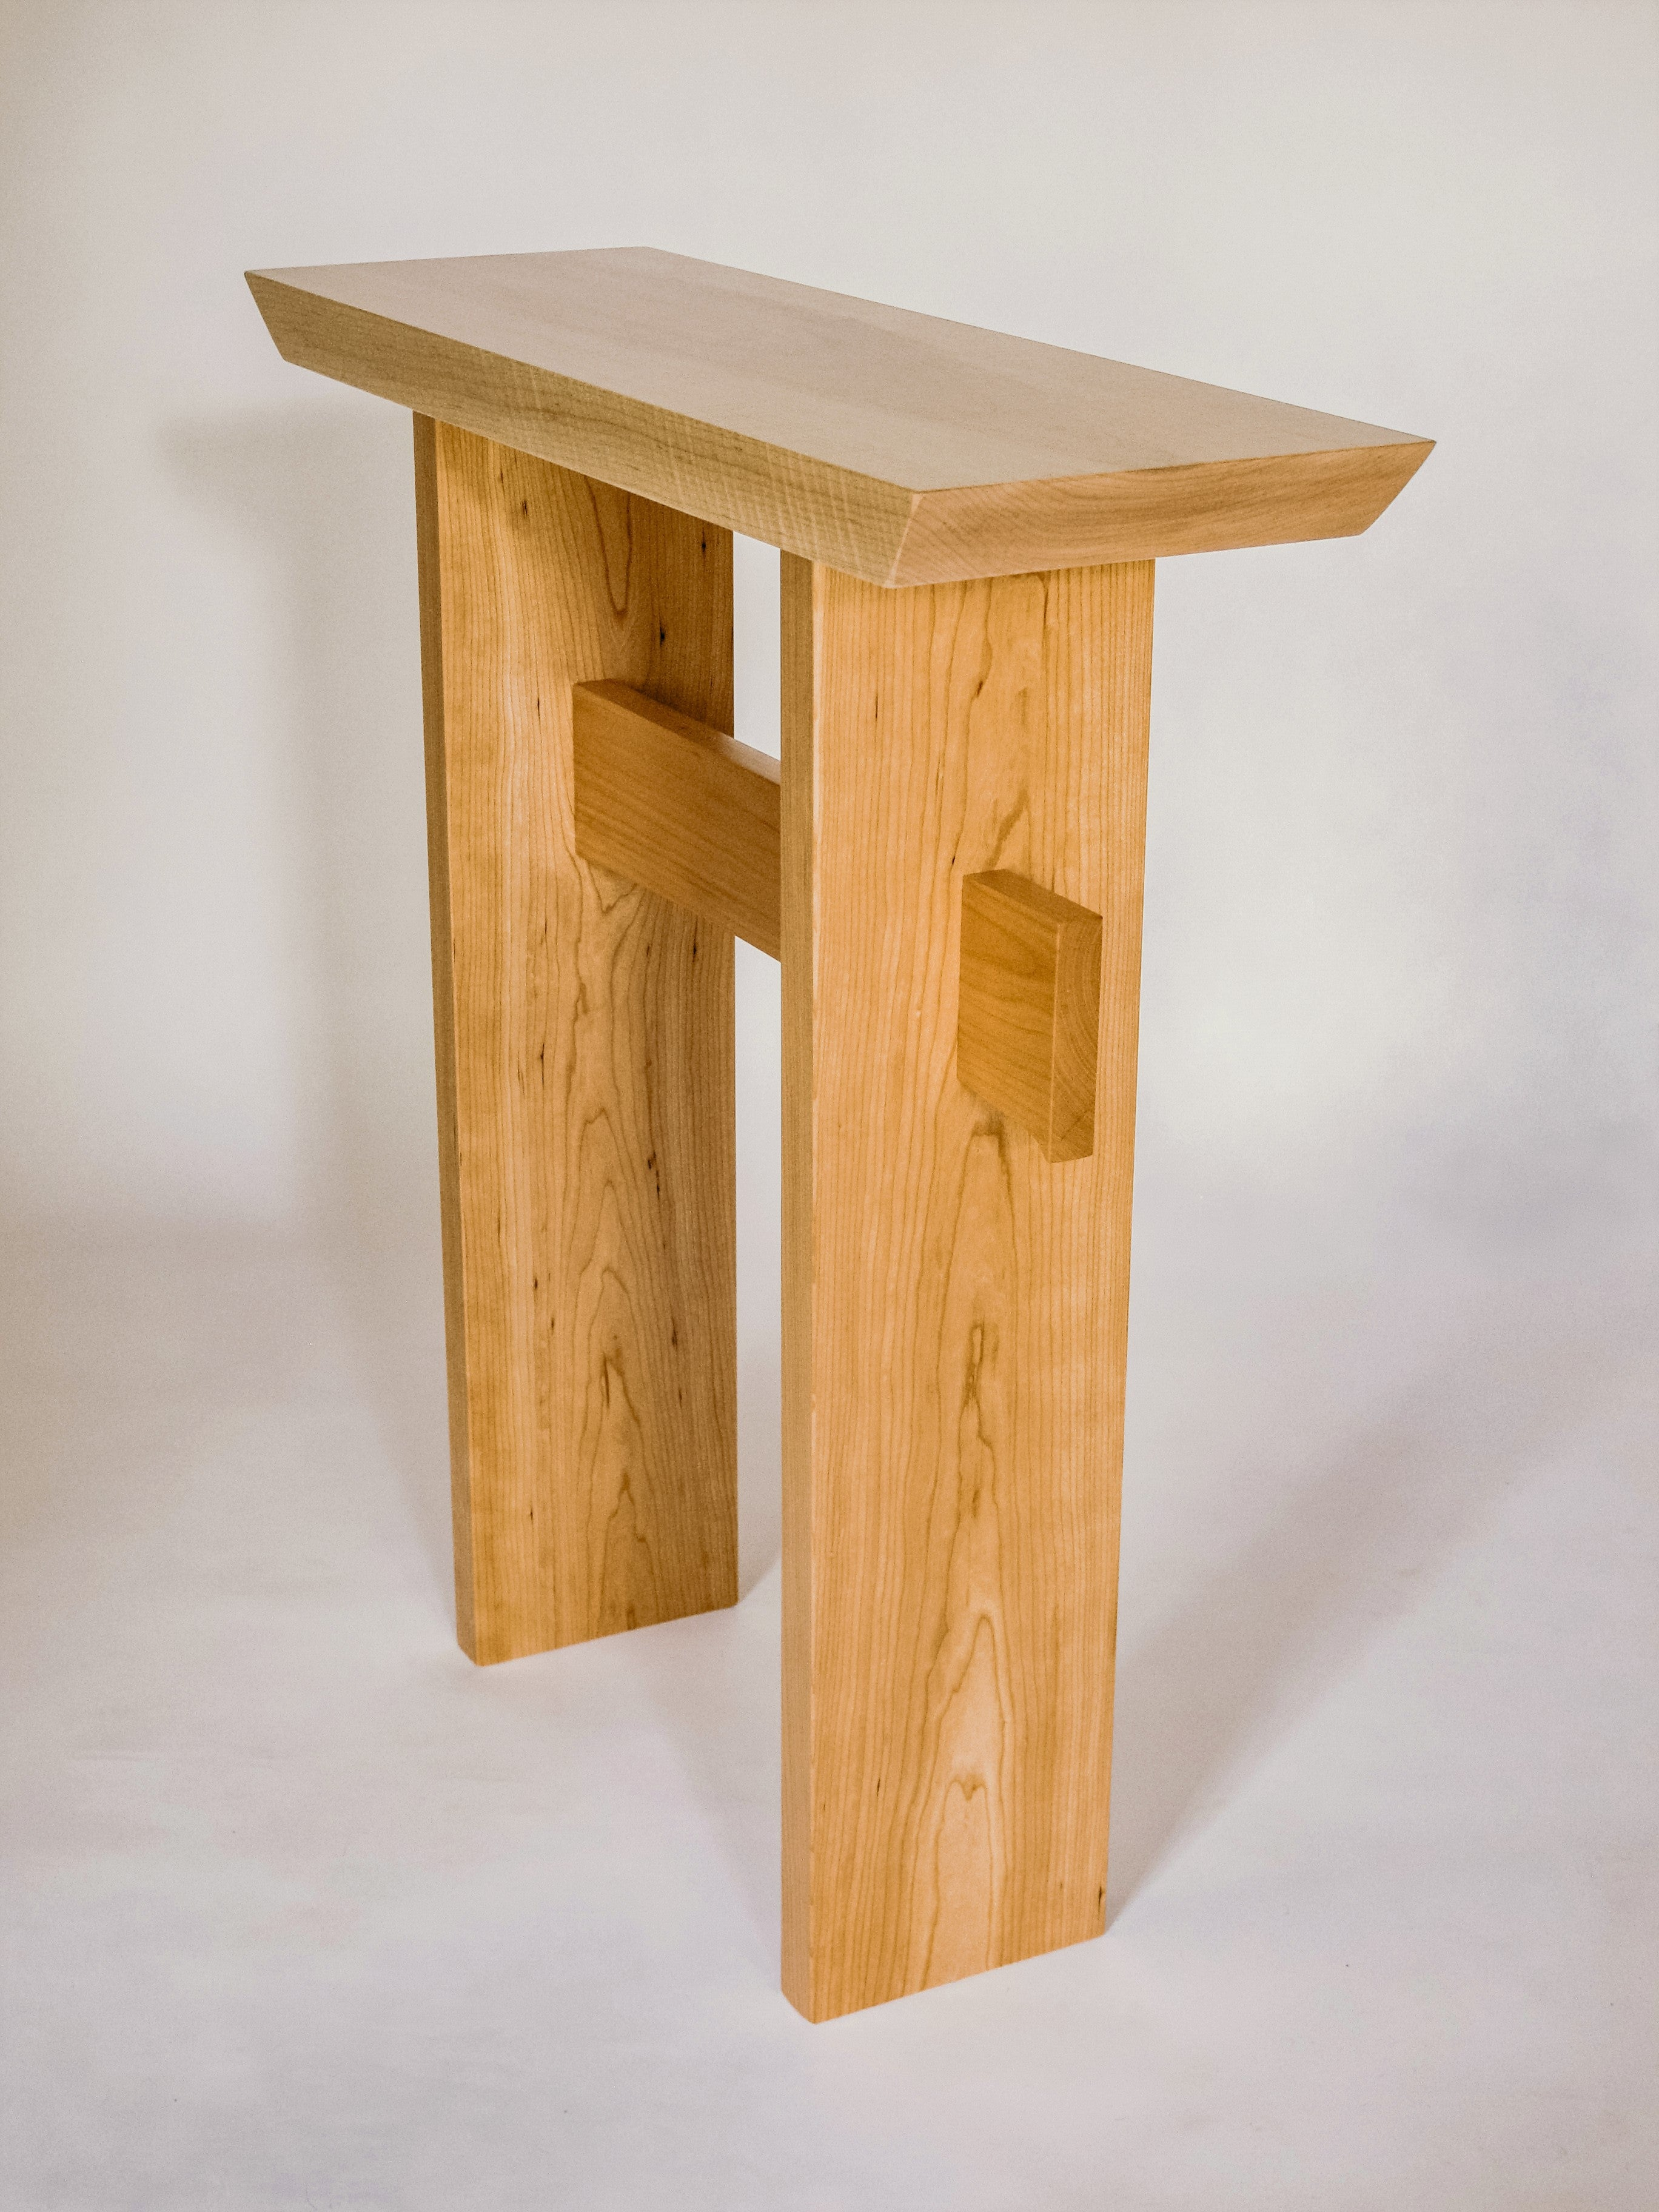 Tiger maple with cherry modern wood table